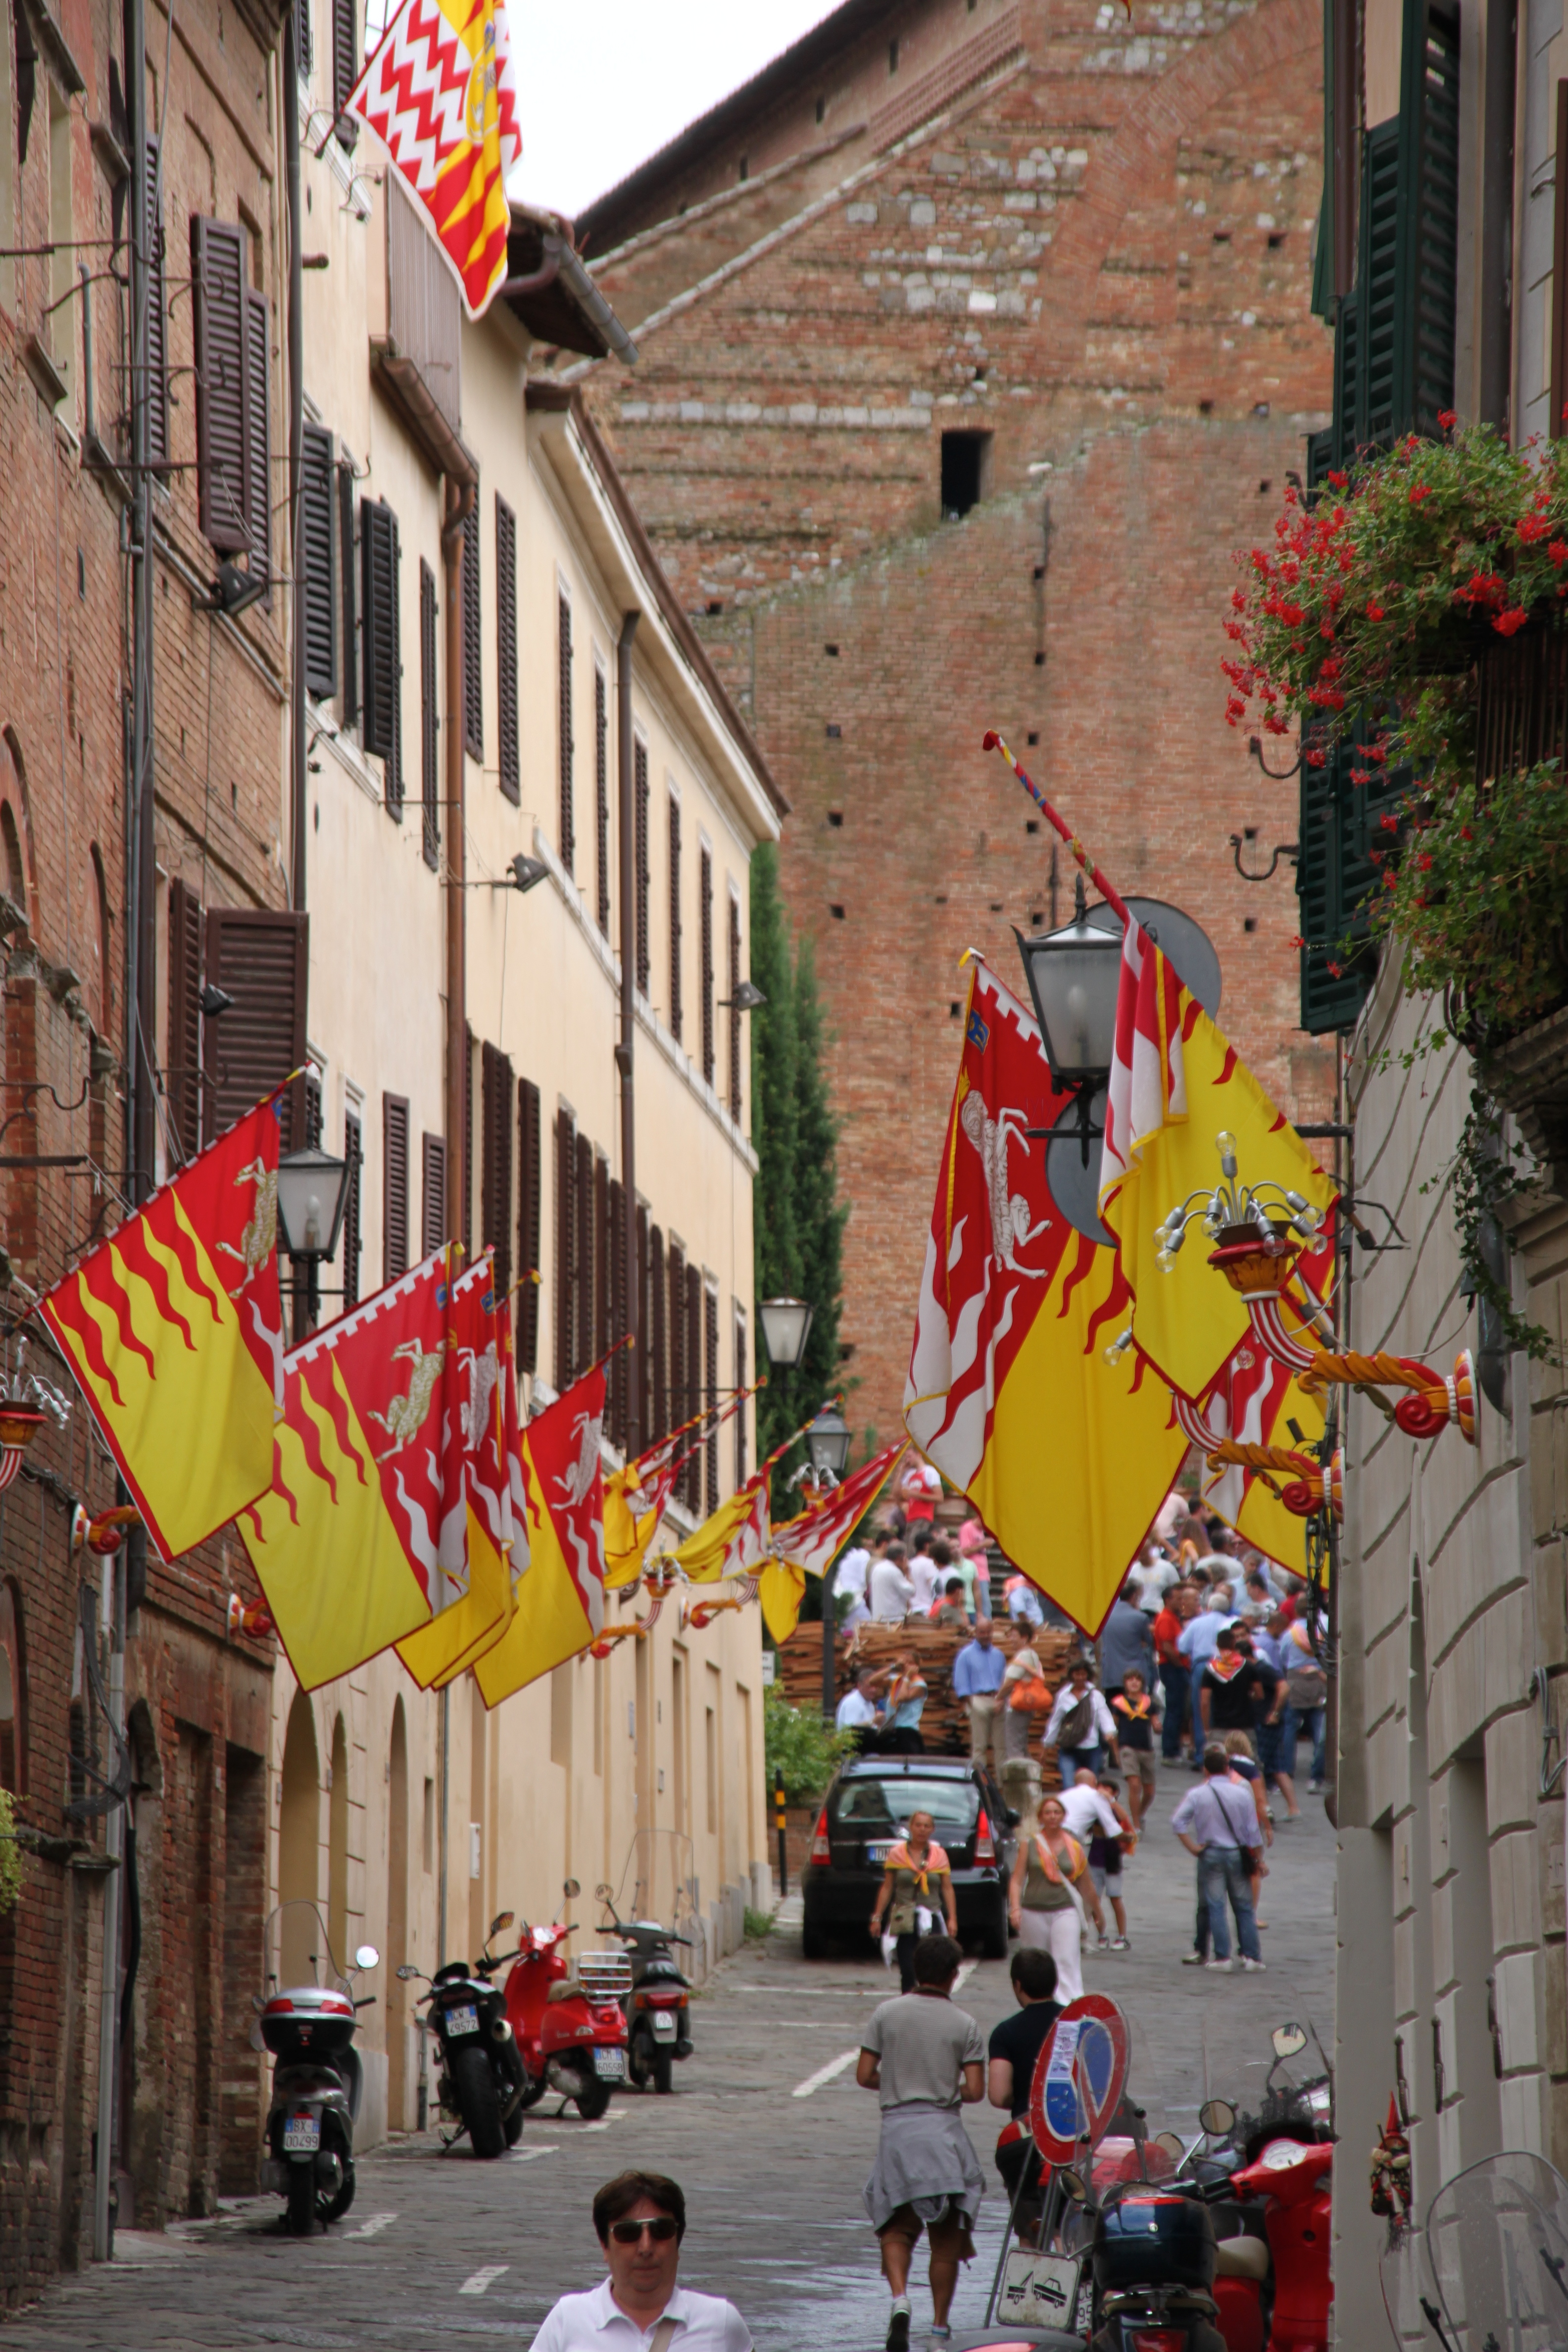 Siena's streets decked in technicoloured flags during the Palio horse race season